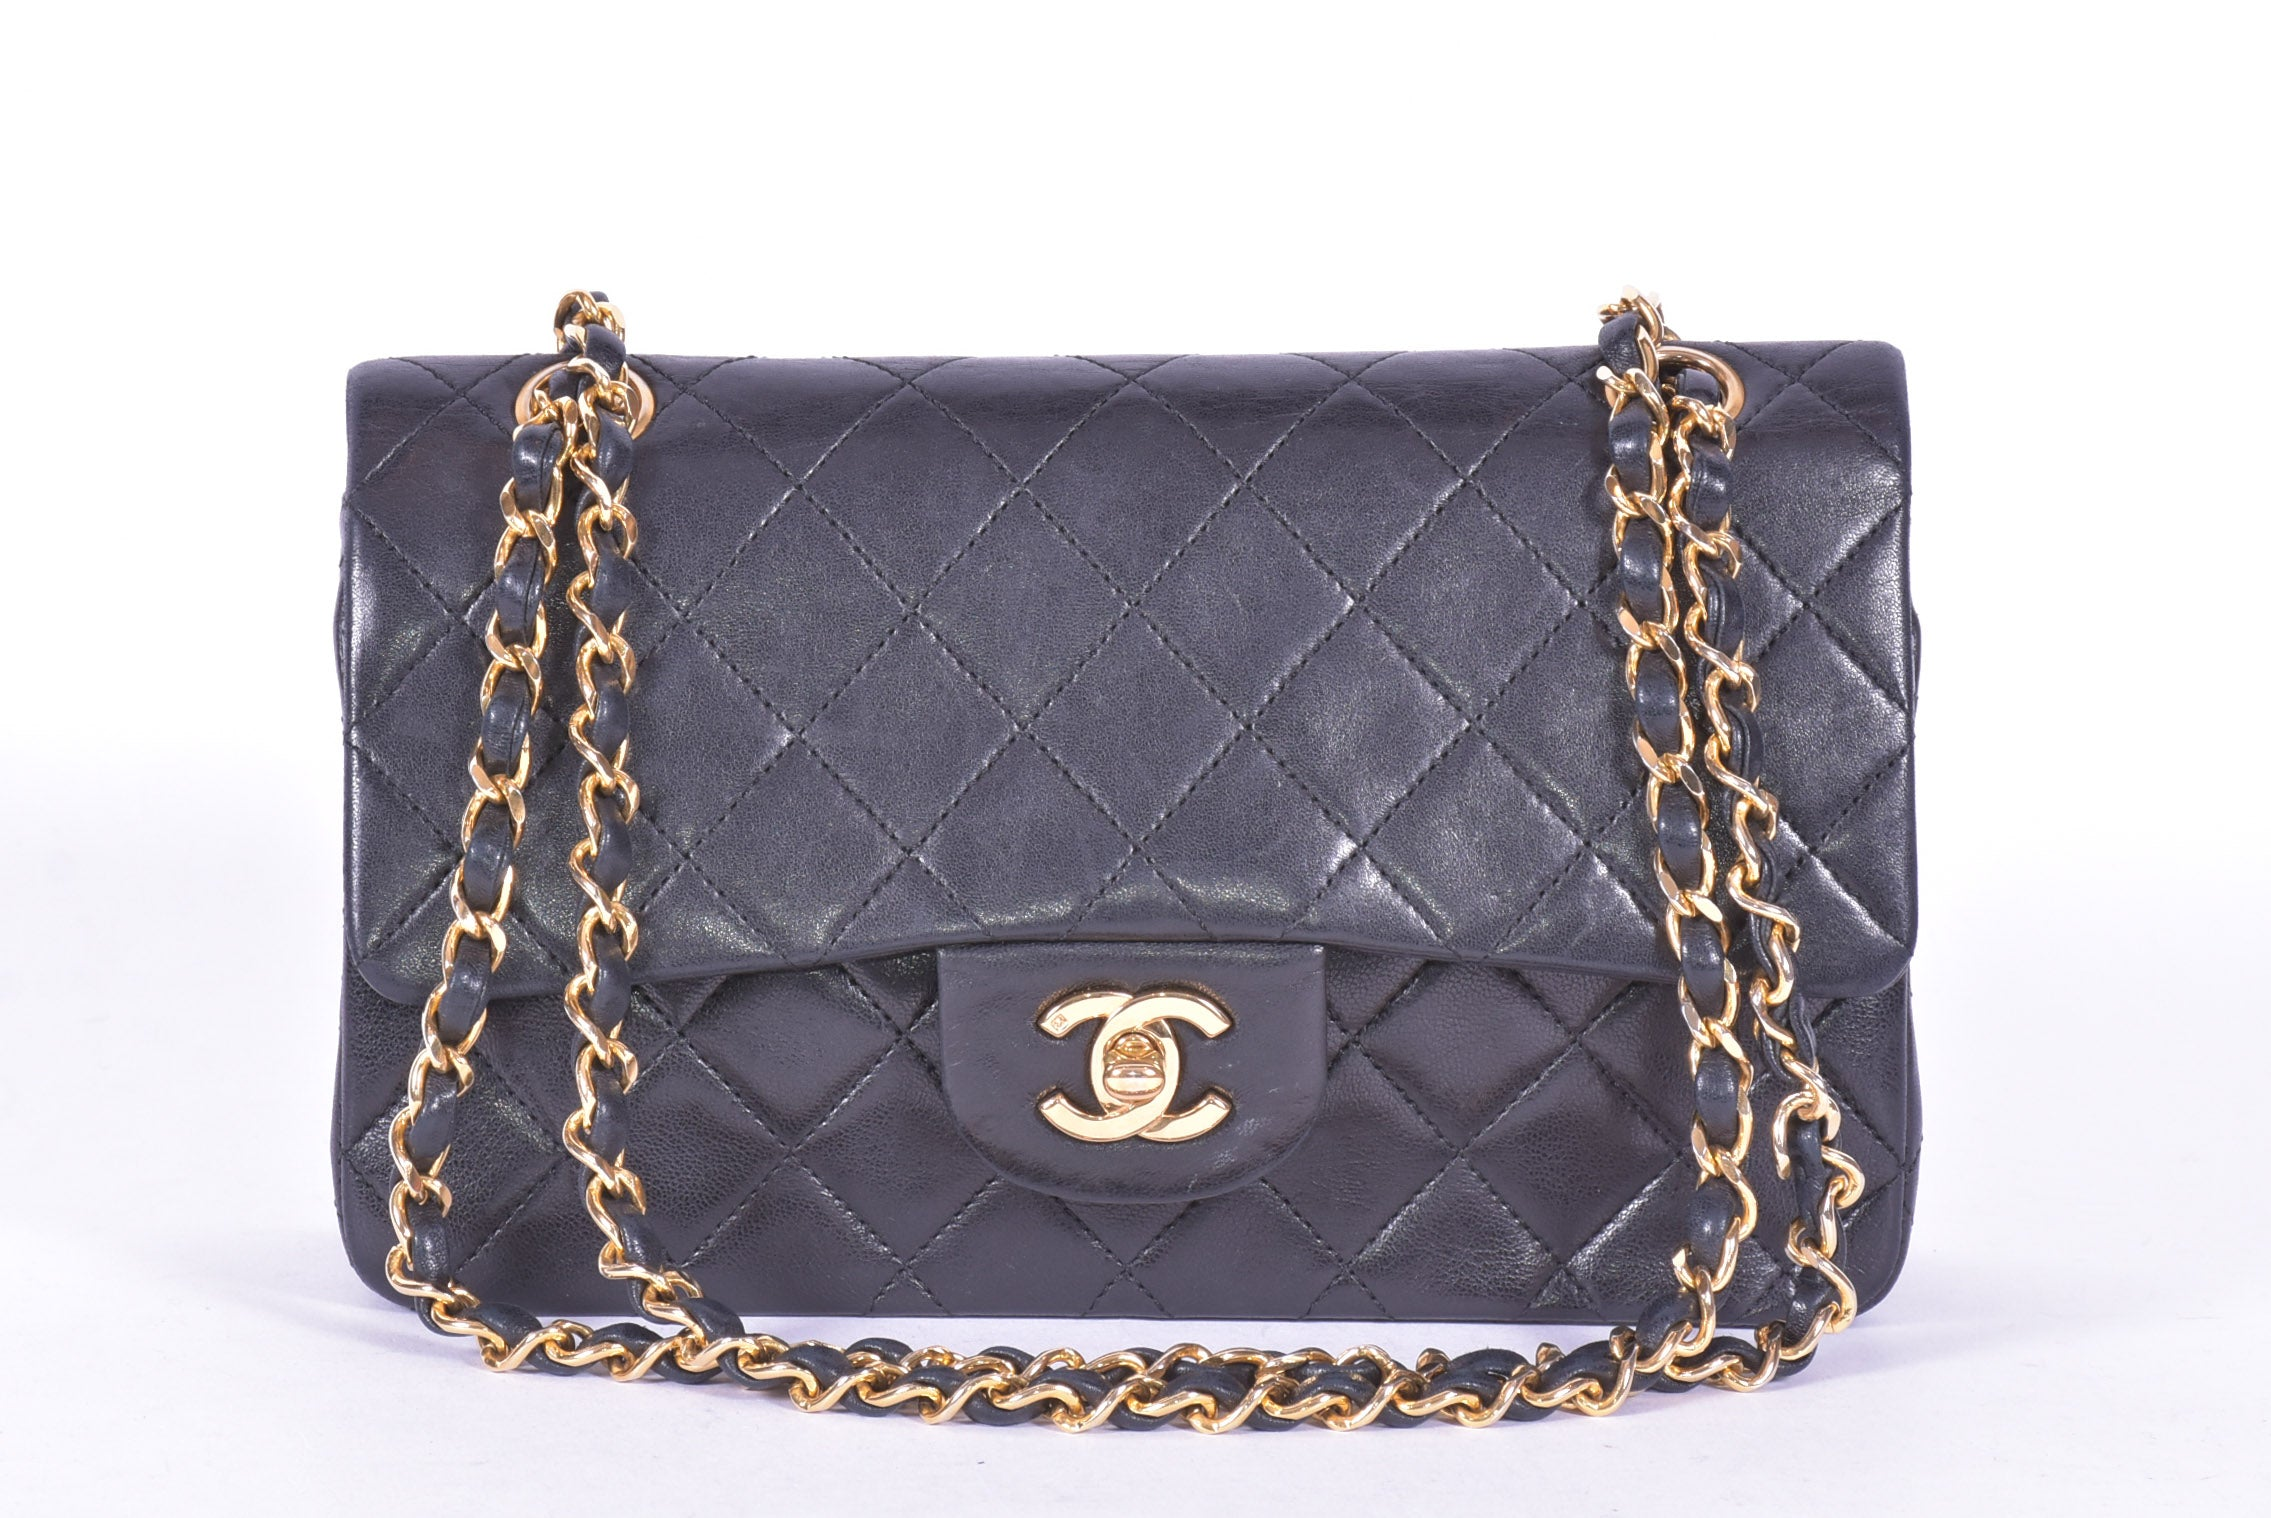 Chanel Vintage Double Flap Bag in Black